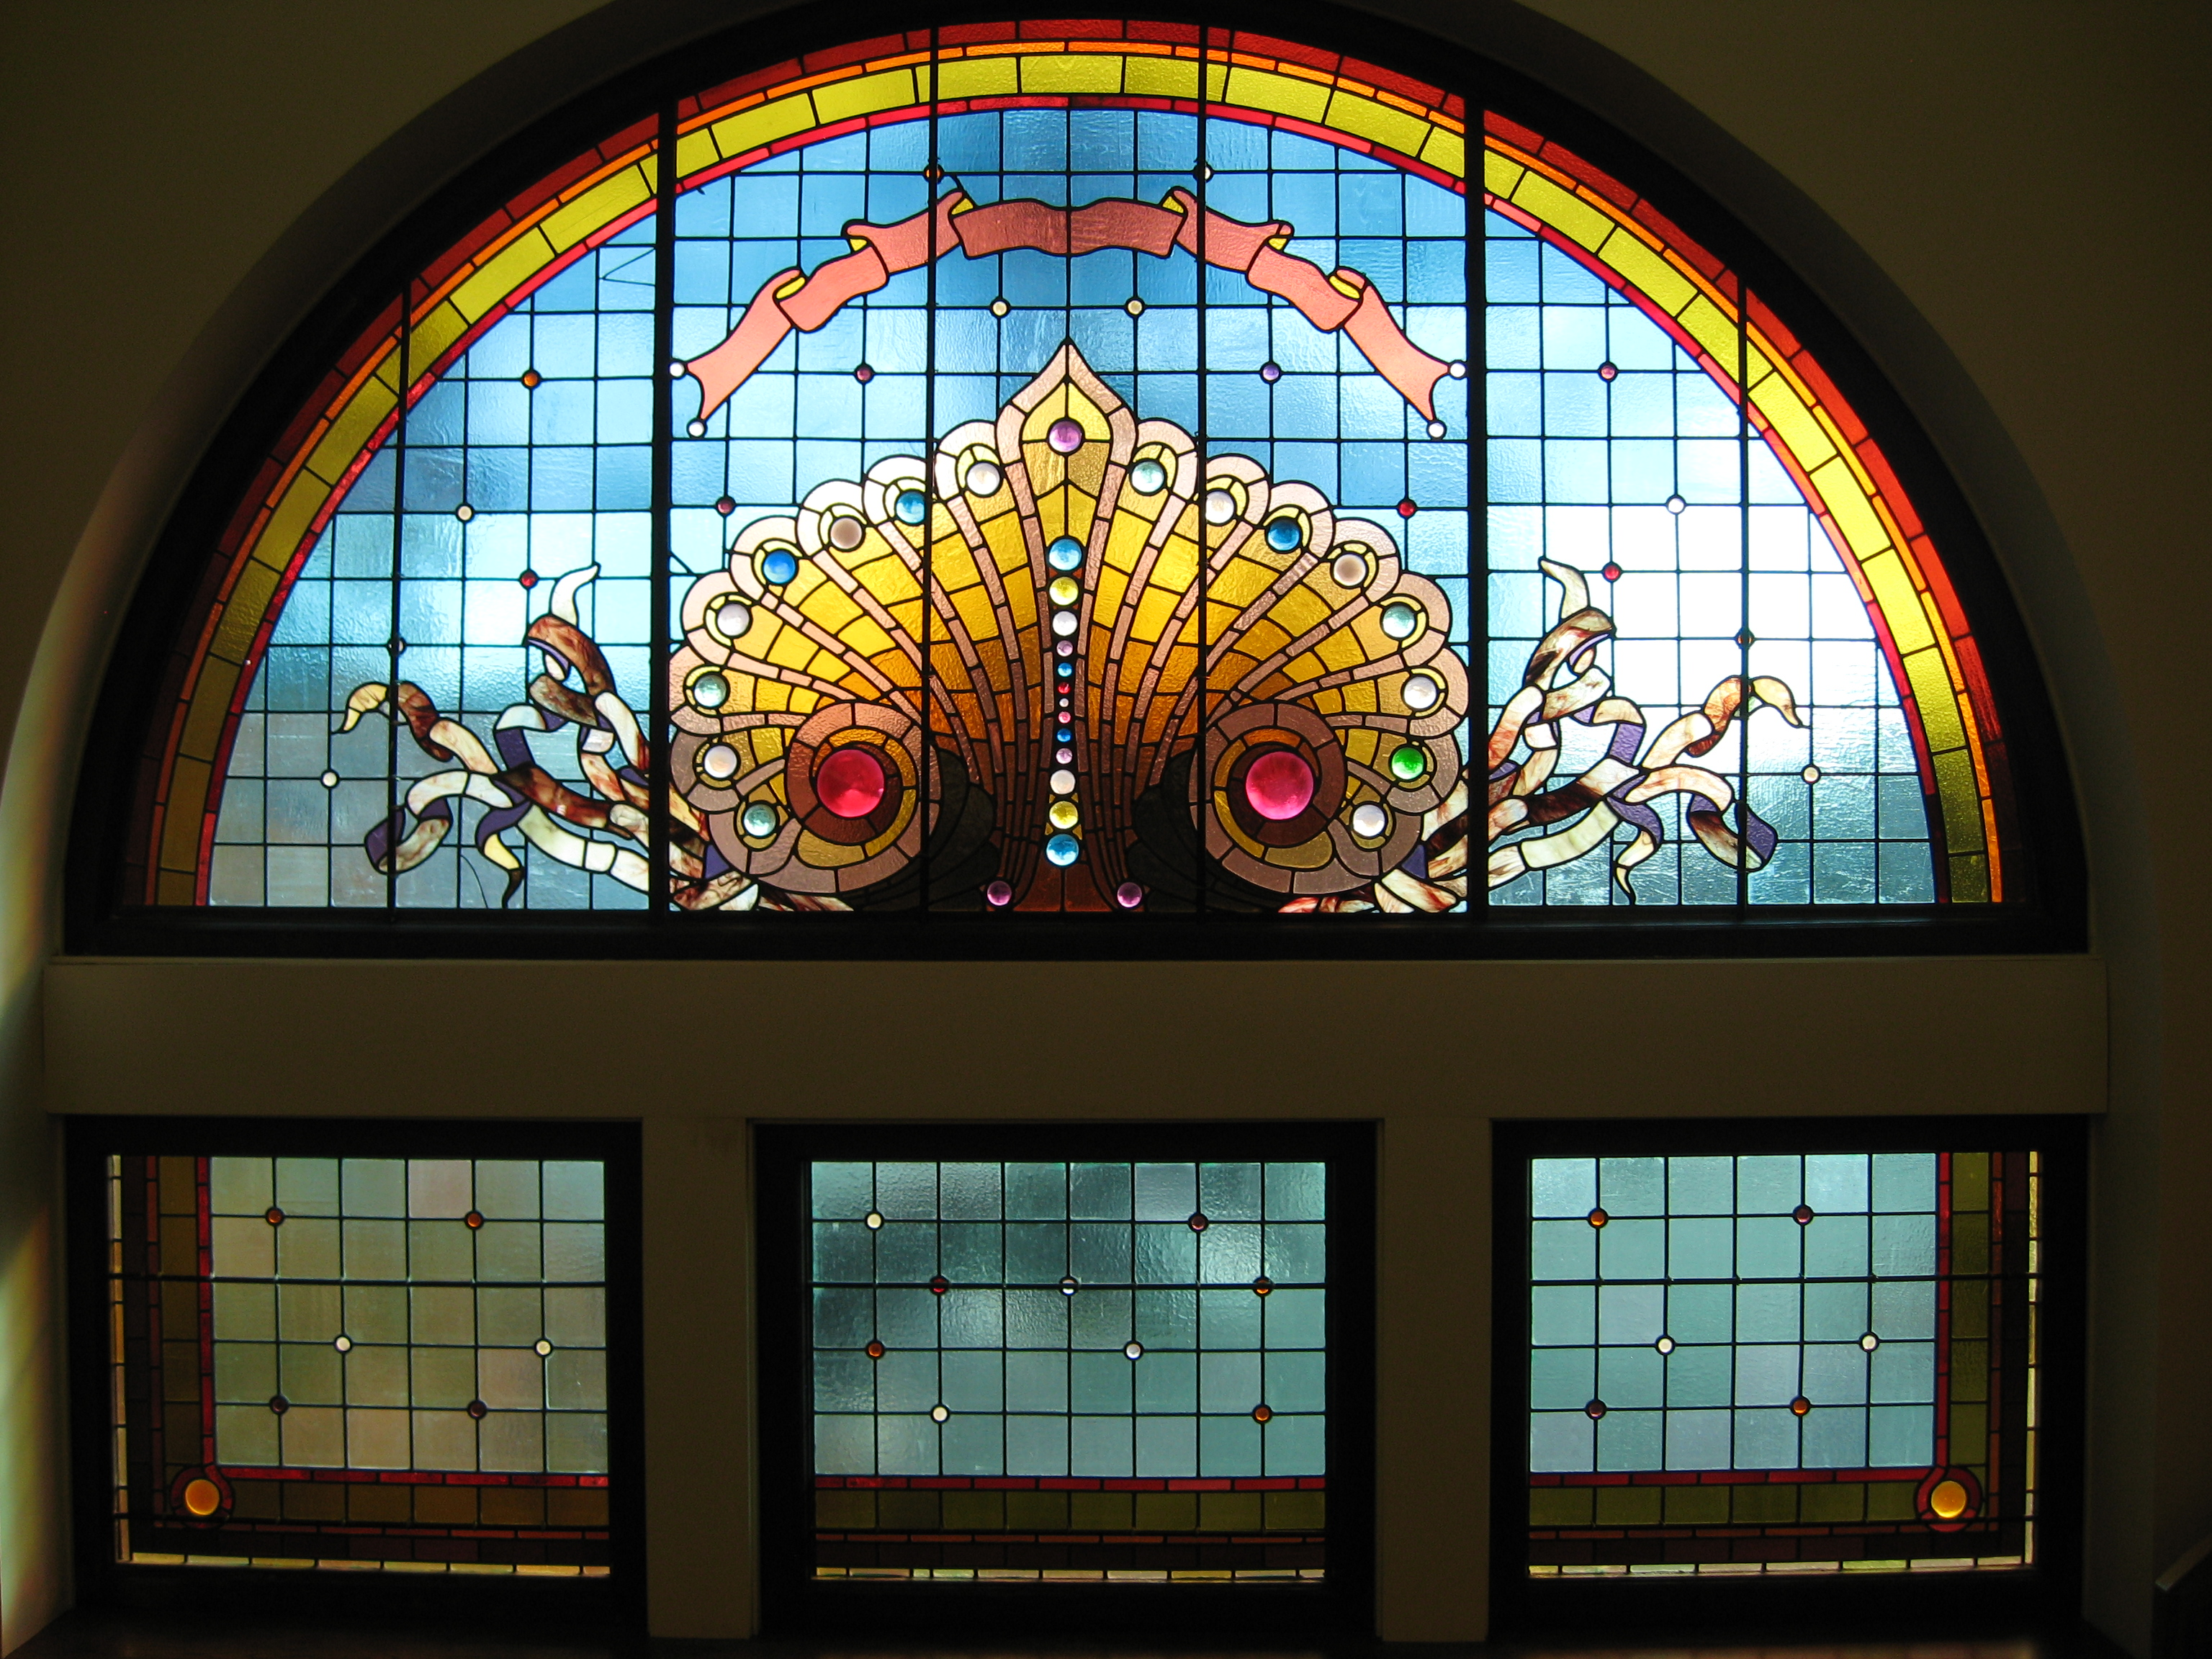 The building's many stained glass windows are among its most famous features.